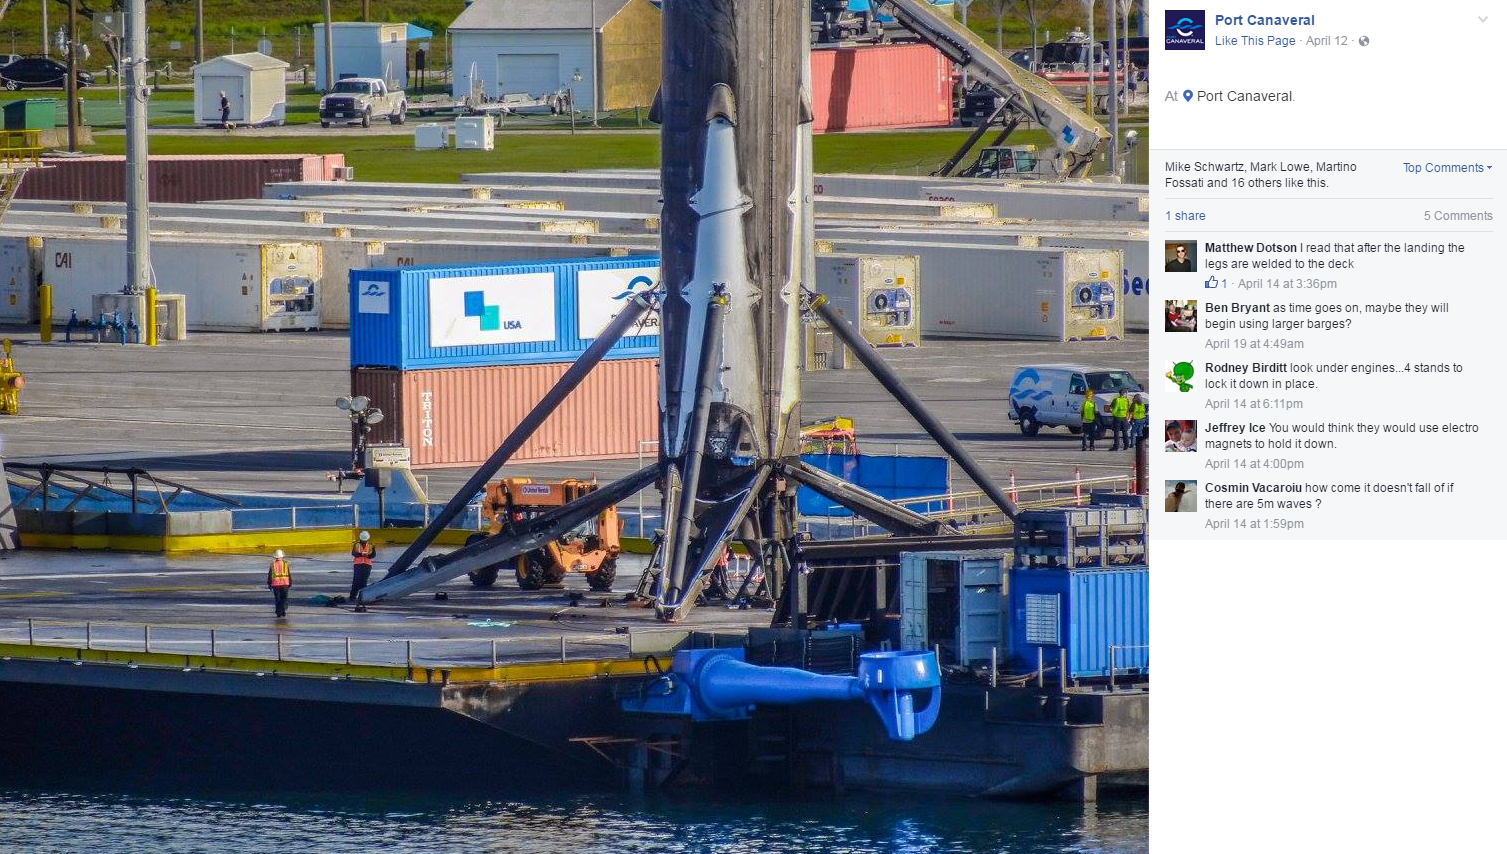 Port Canaveral Facebook GT USA SpaceX Falcon 9 1400